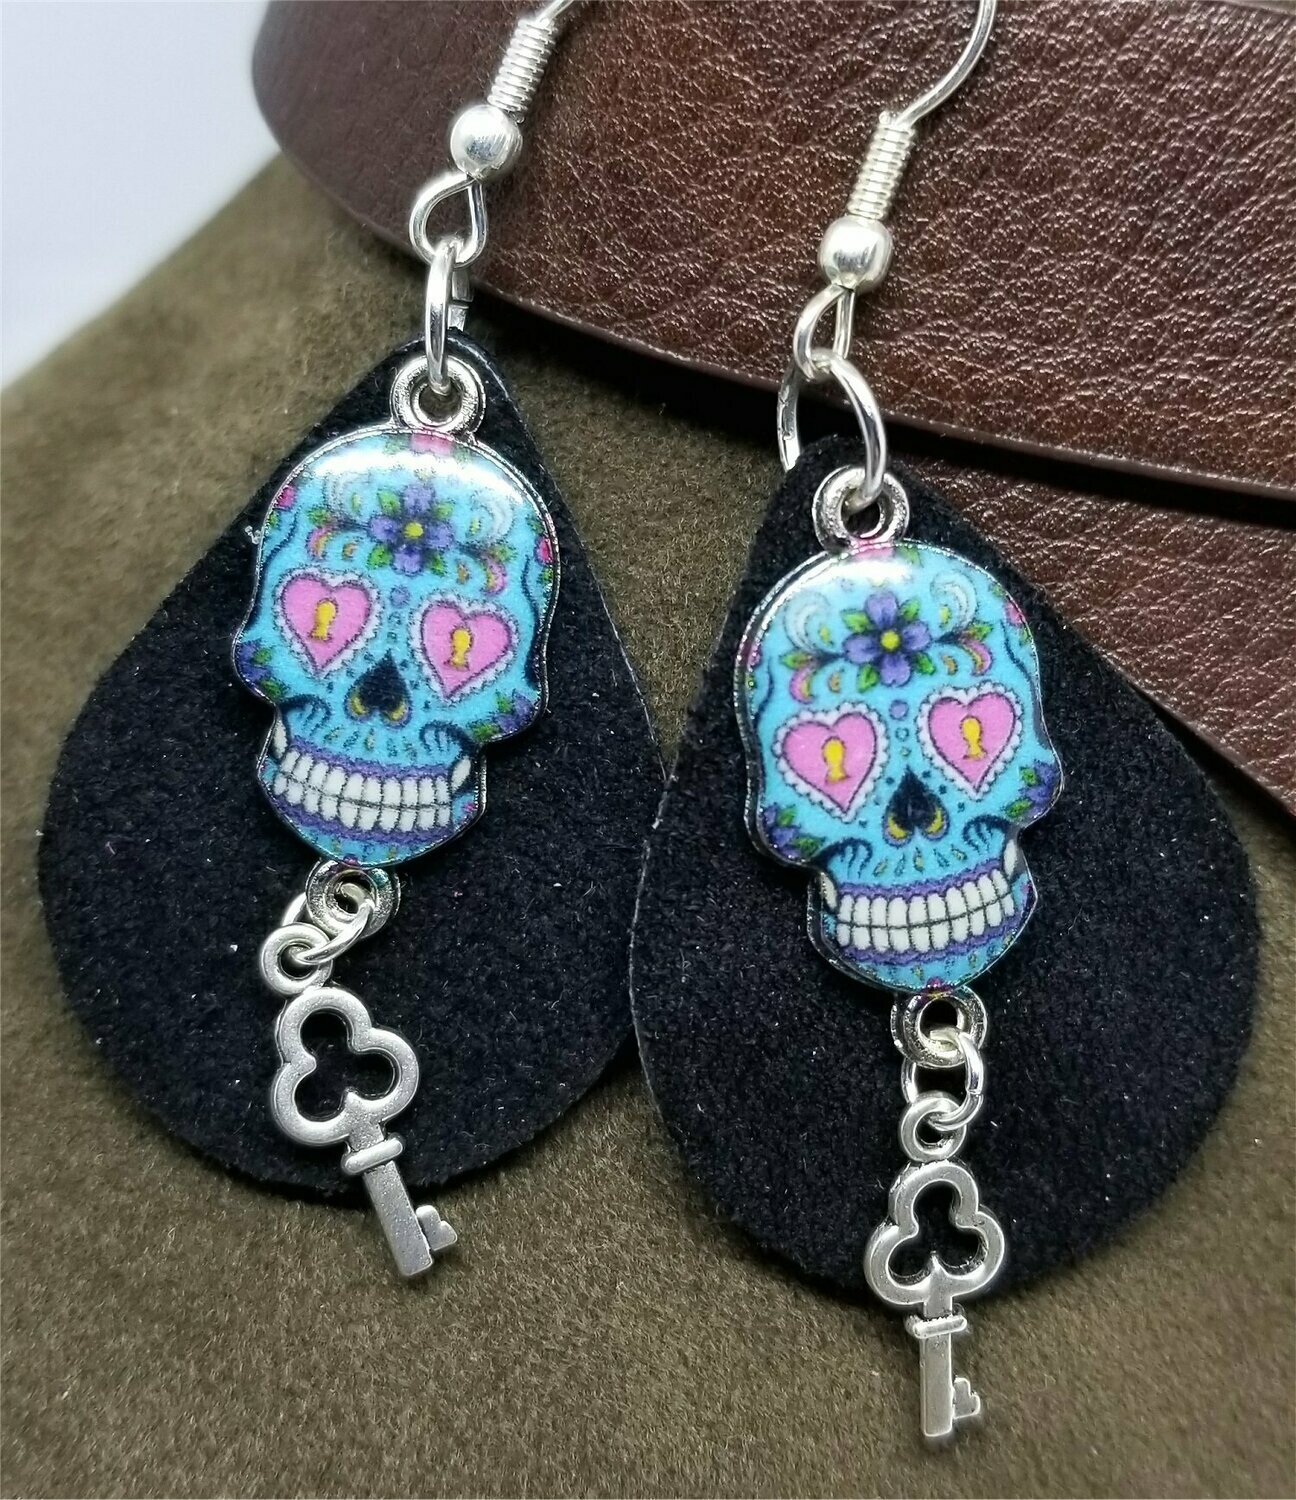 Black Teardrop Suede Leather Earrings with Blue Skull Charms and Silver Key Charm Dangles